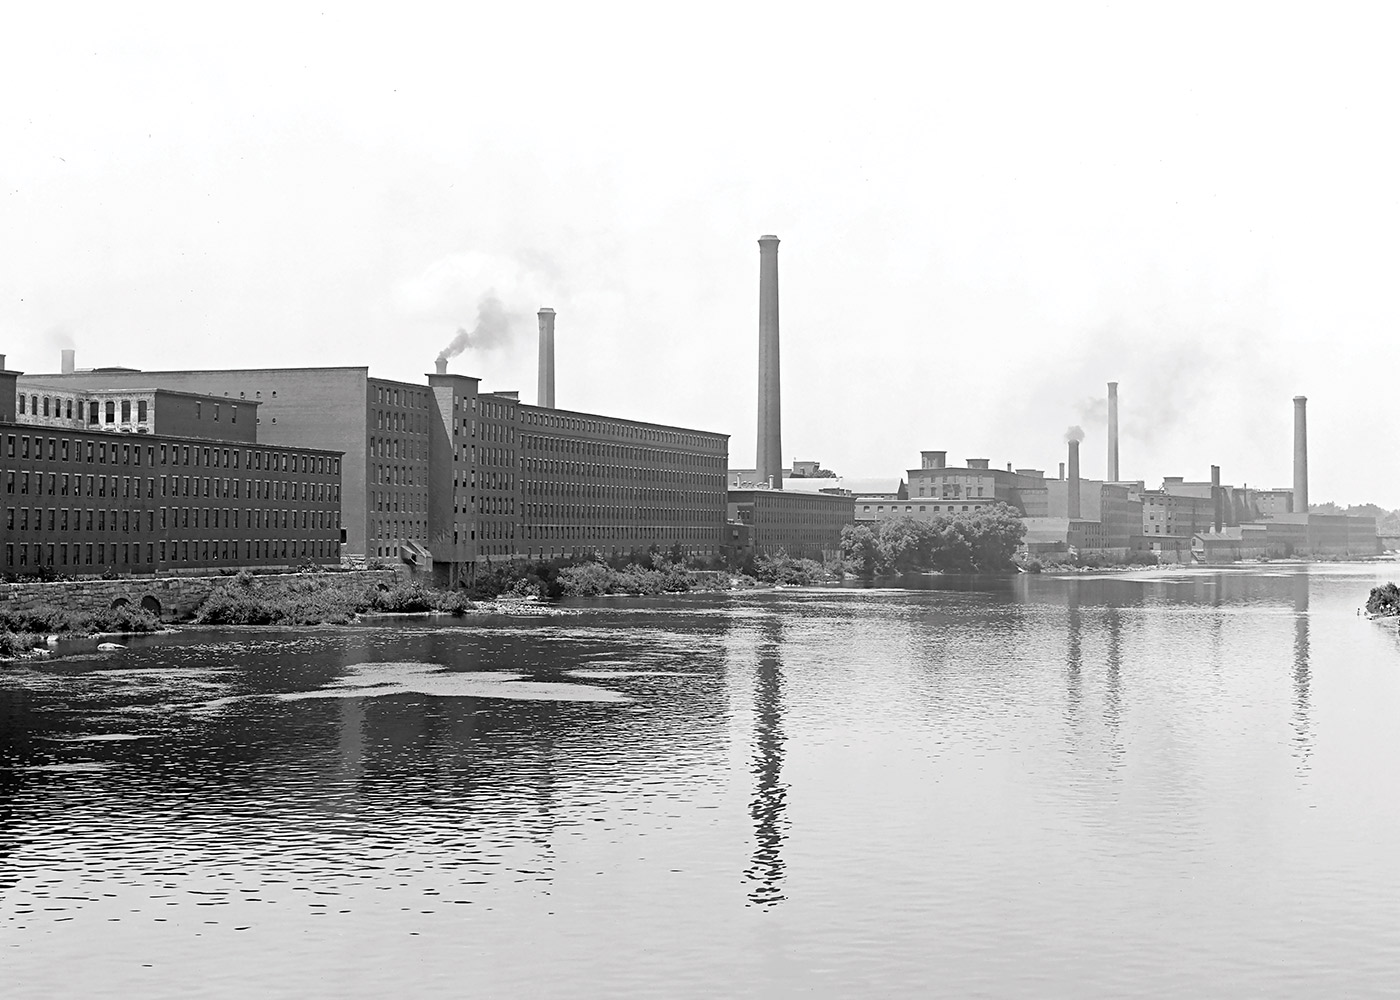 black and white photo of Merrimack River in Lowell